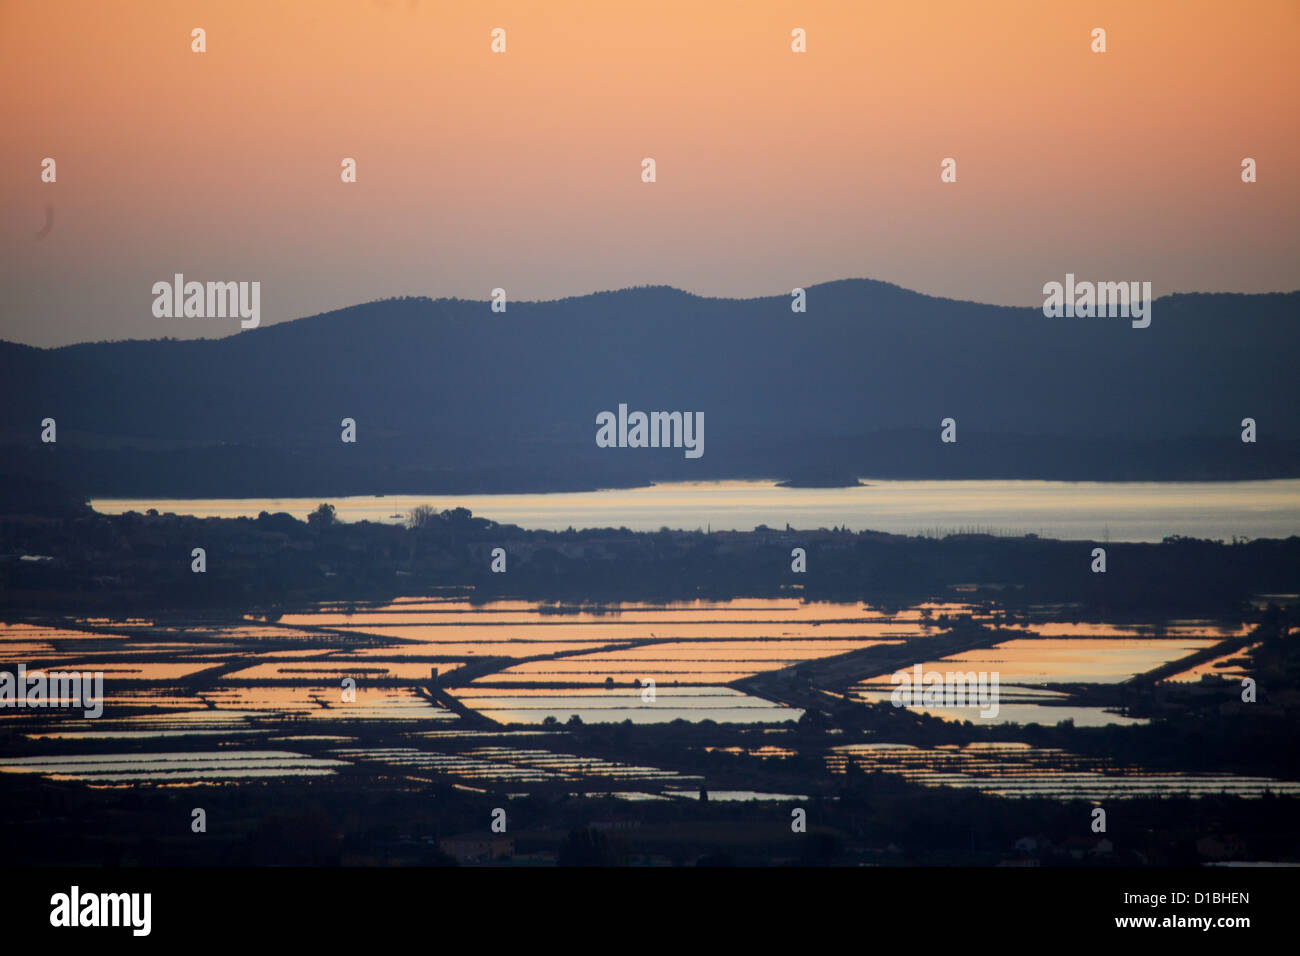 Sunrising above the Porquerolles island and the salt flats - Stock Image